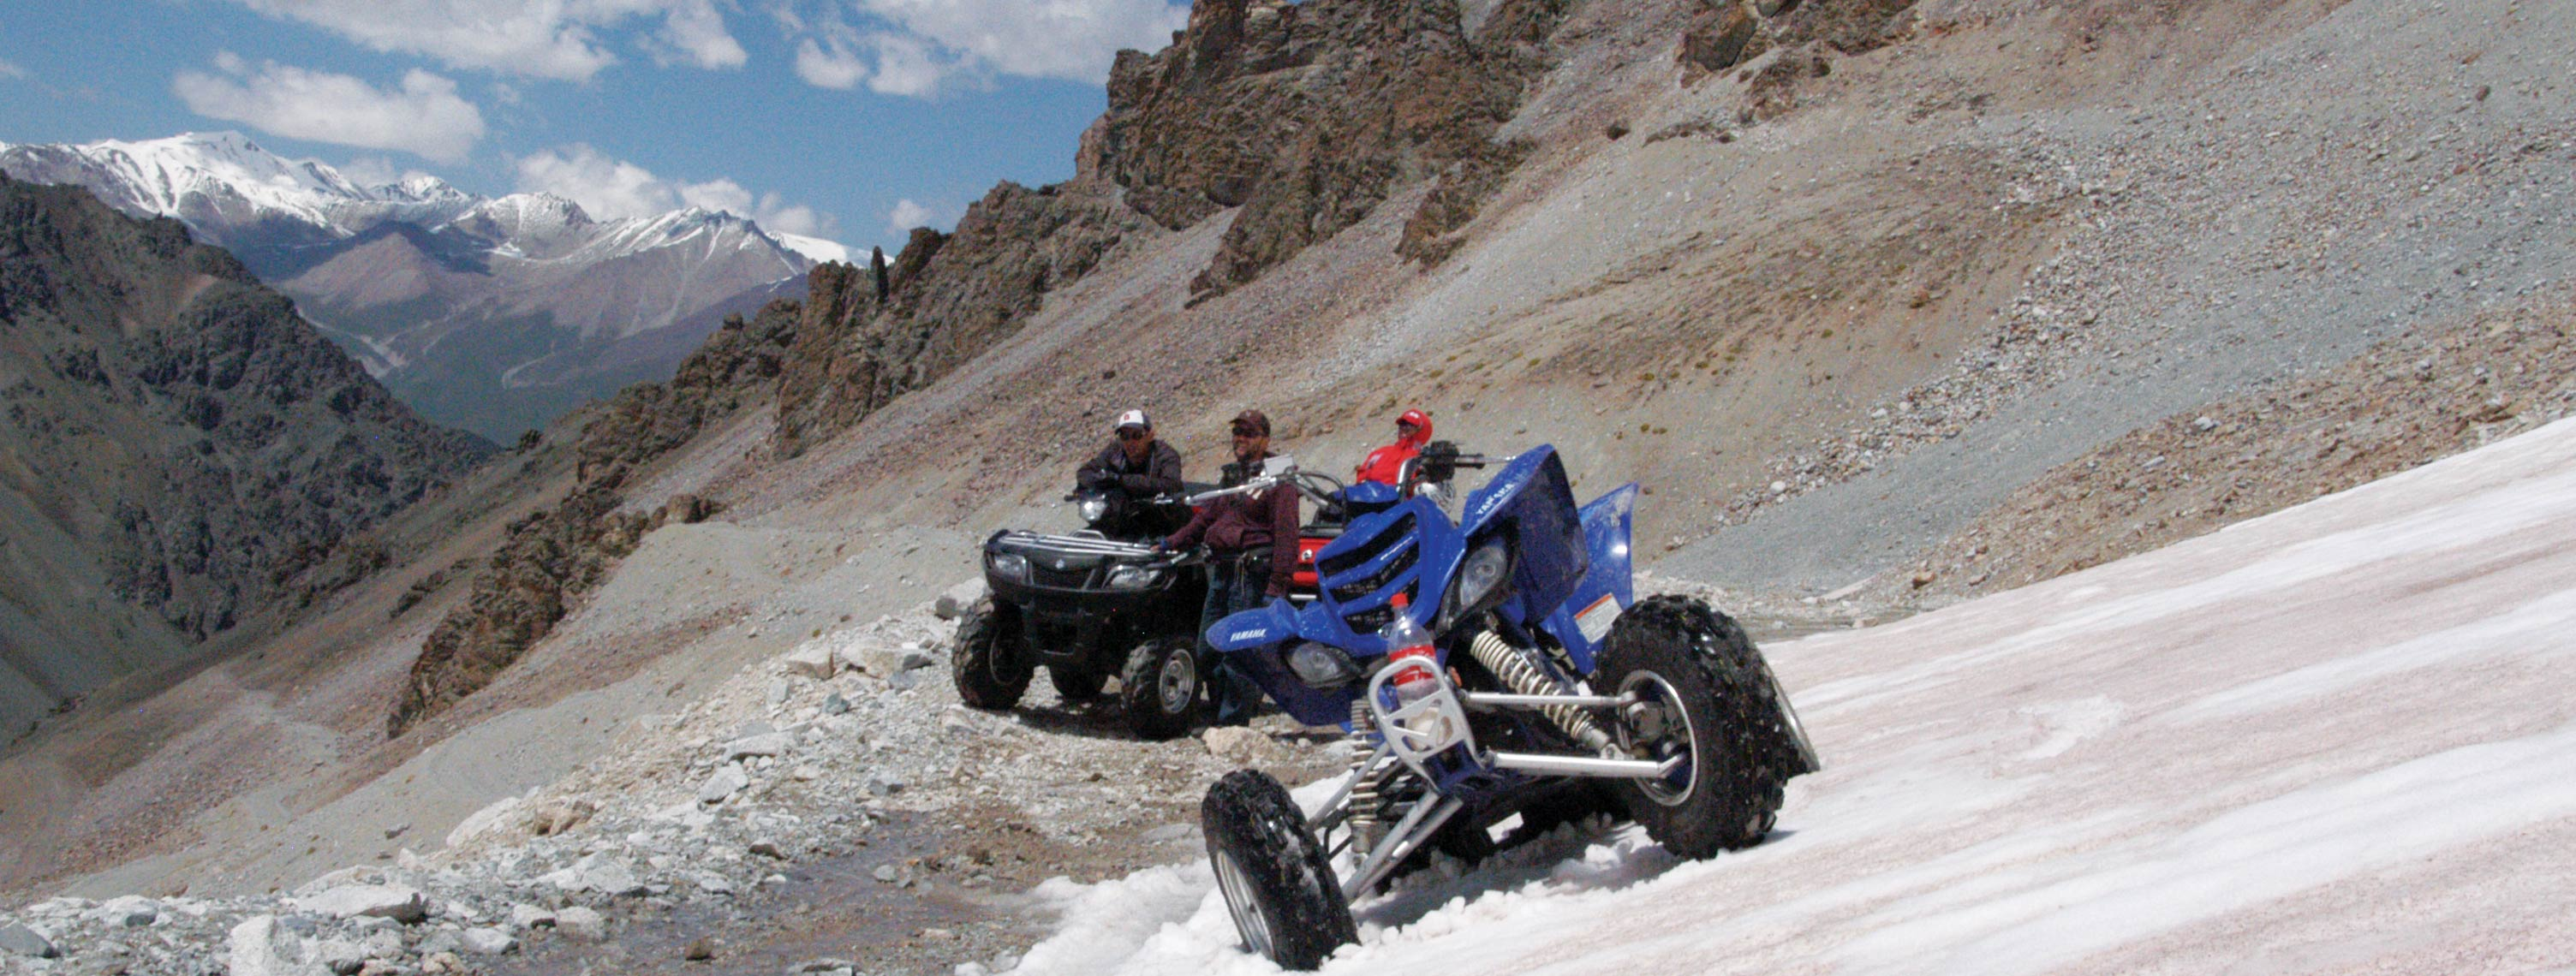 Off-road Quad tour - Motorbike tour through the high mountains Tian-Shan